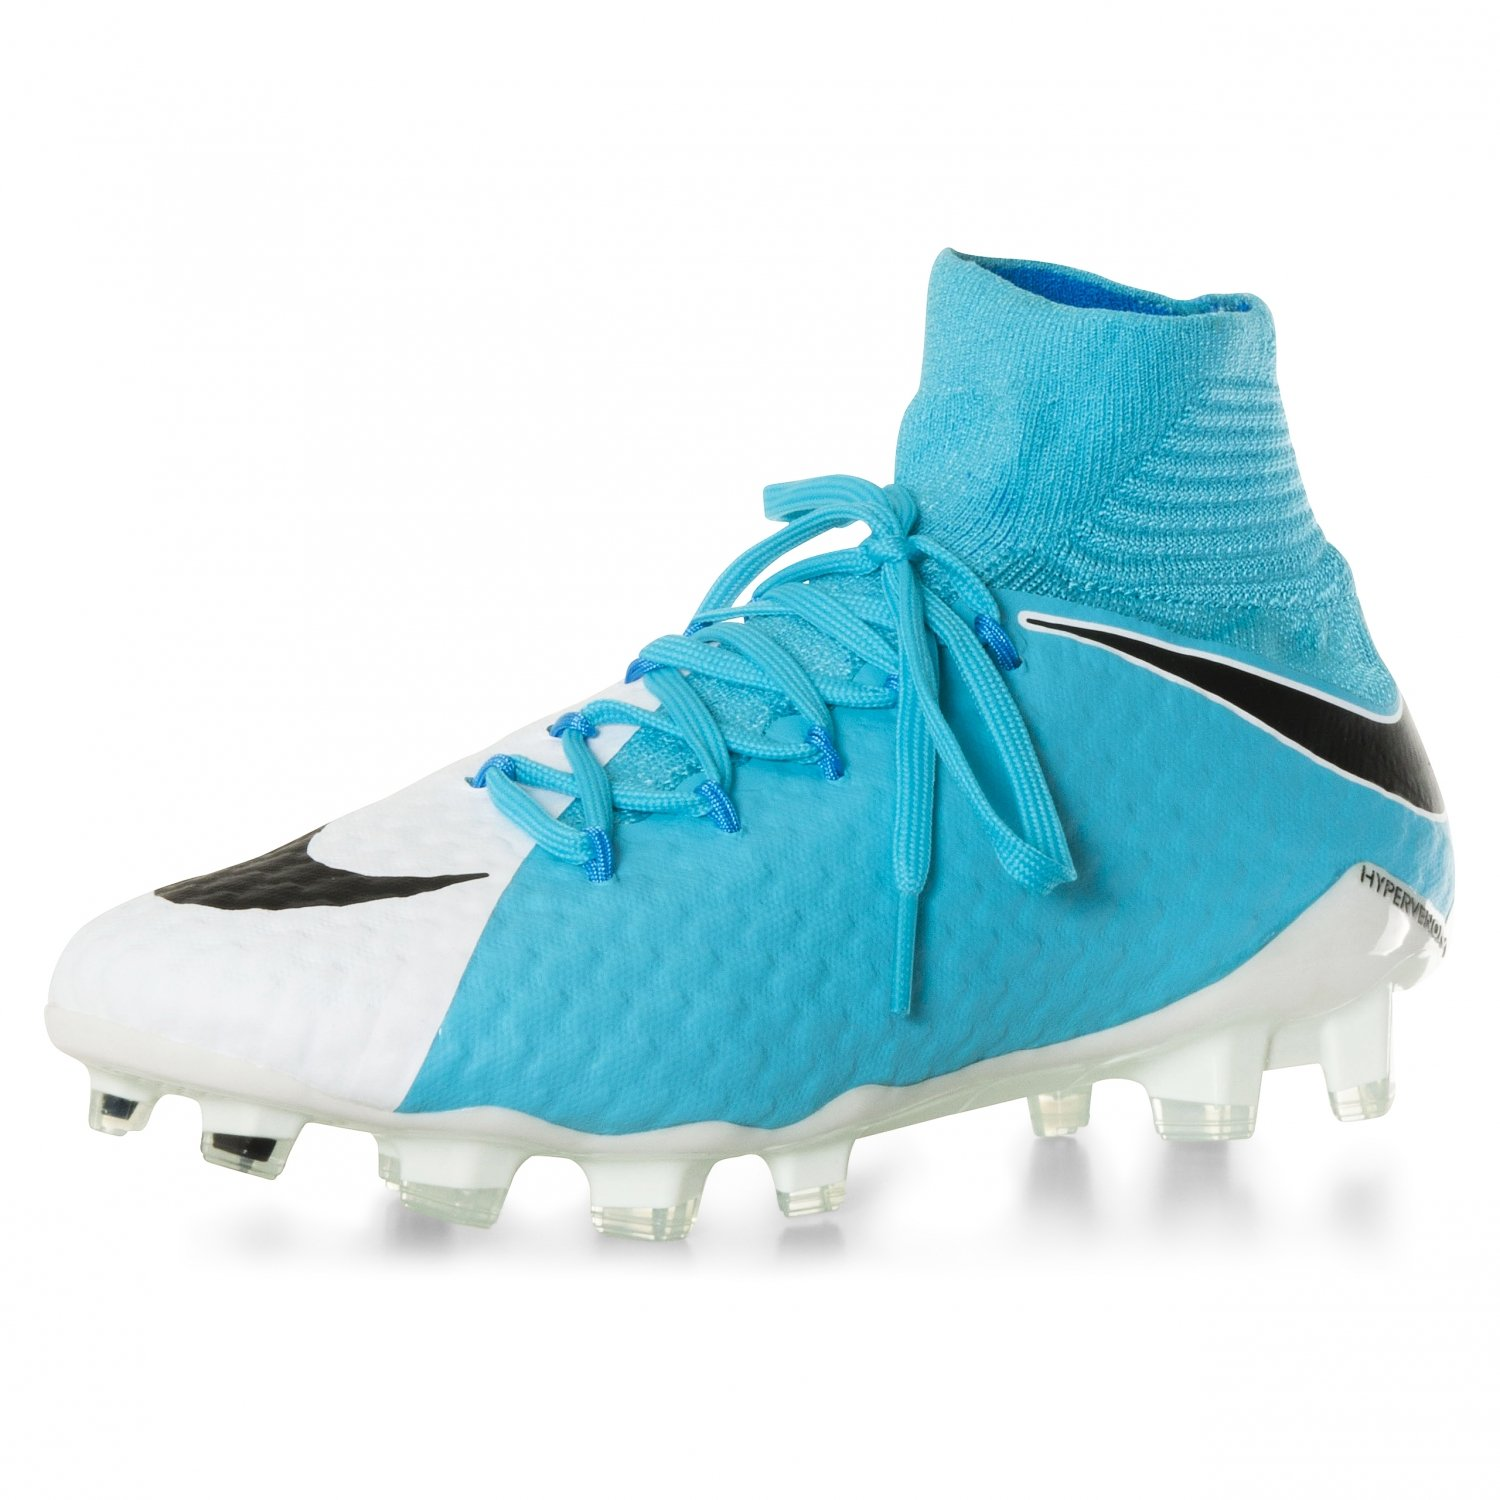 0fe1b2c154df Nike Men's Hypervenom Phatal Dynamic Fit Collar II FG Soccer Cleat (Sz. 10.  5) Photo Blue: Buy Online at Low Prices in India - Amazon.in